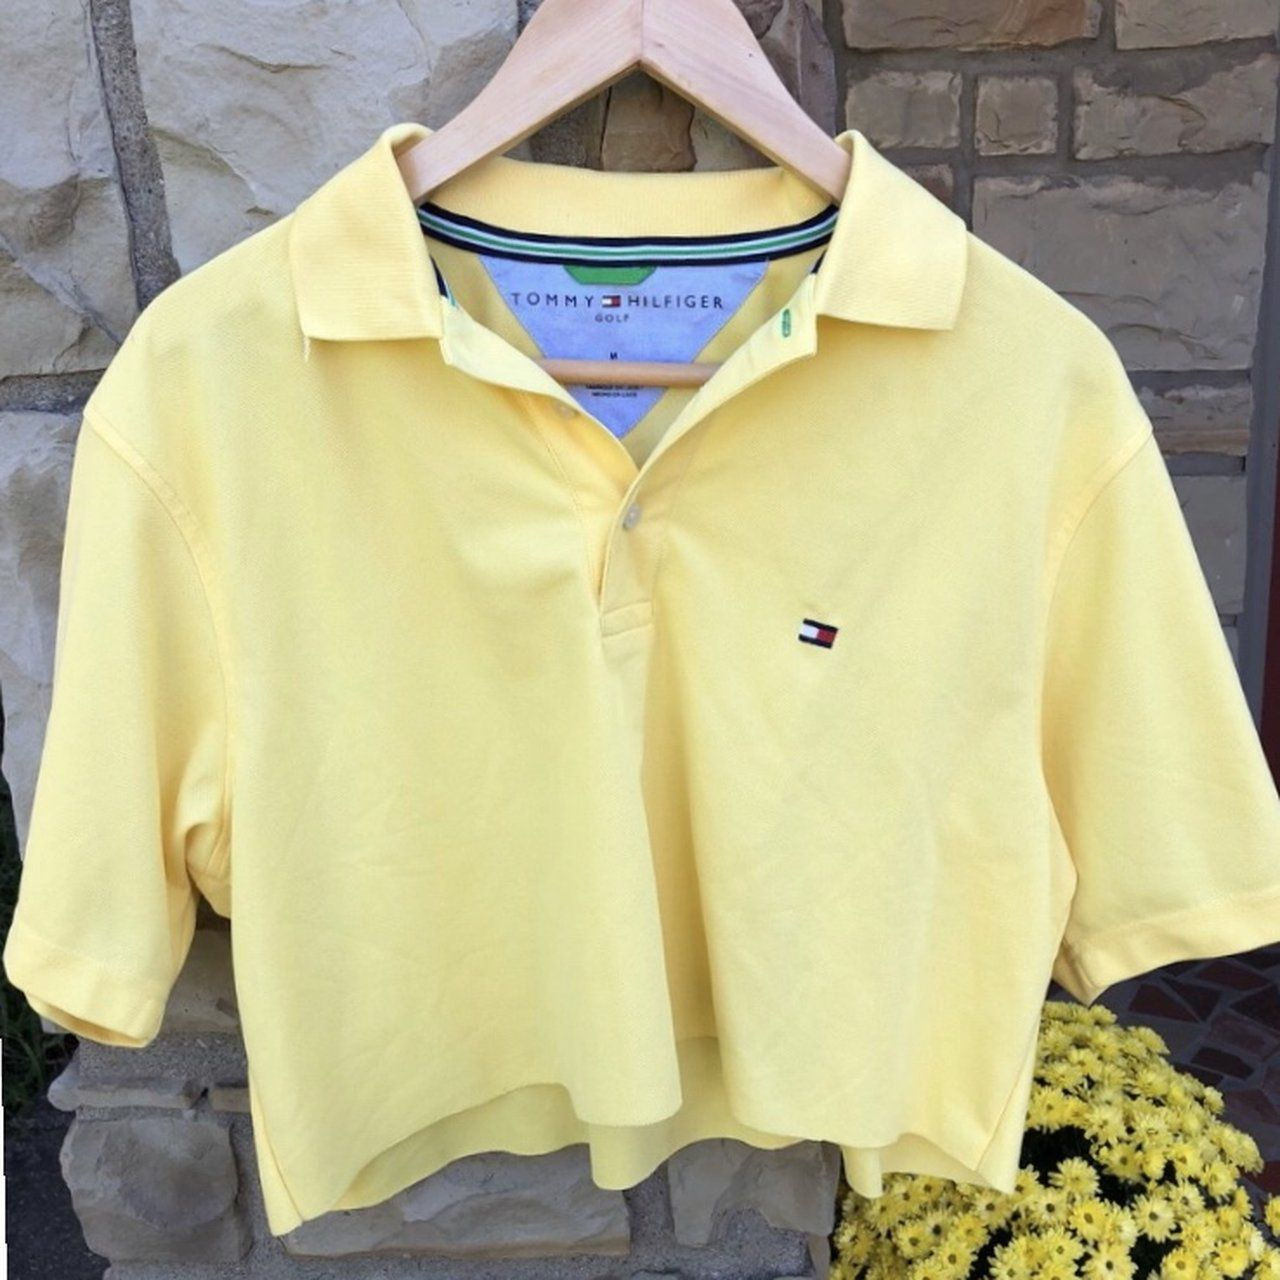 5dab7d0697ffa4 tommy hilfiger slight cropped polo shirt ~no flaws ~emma to - Depop